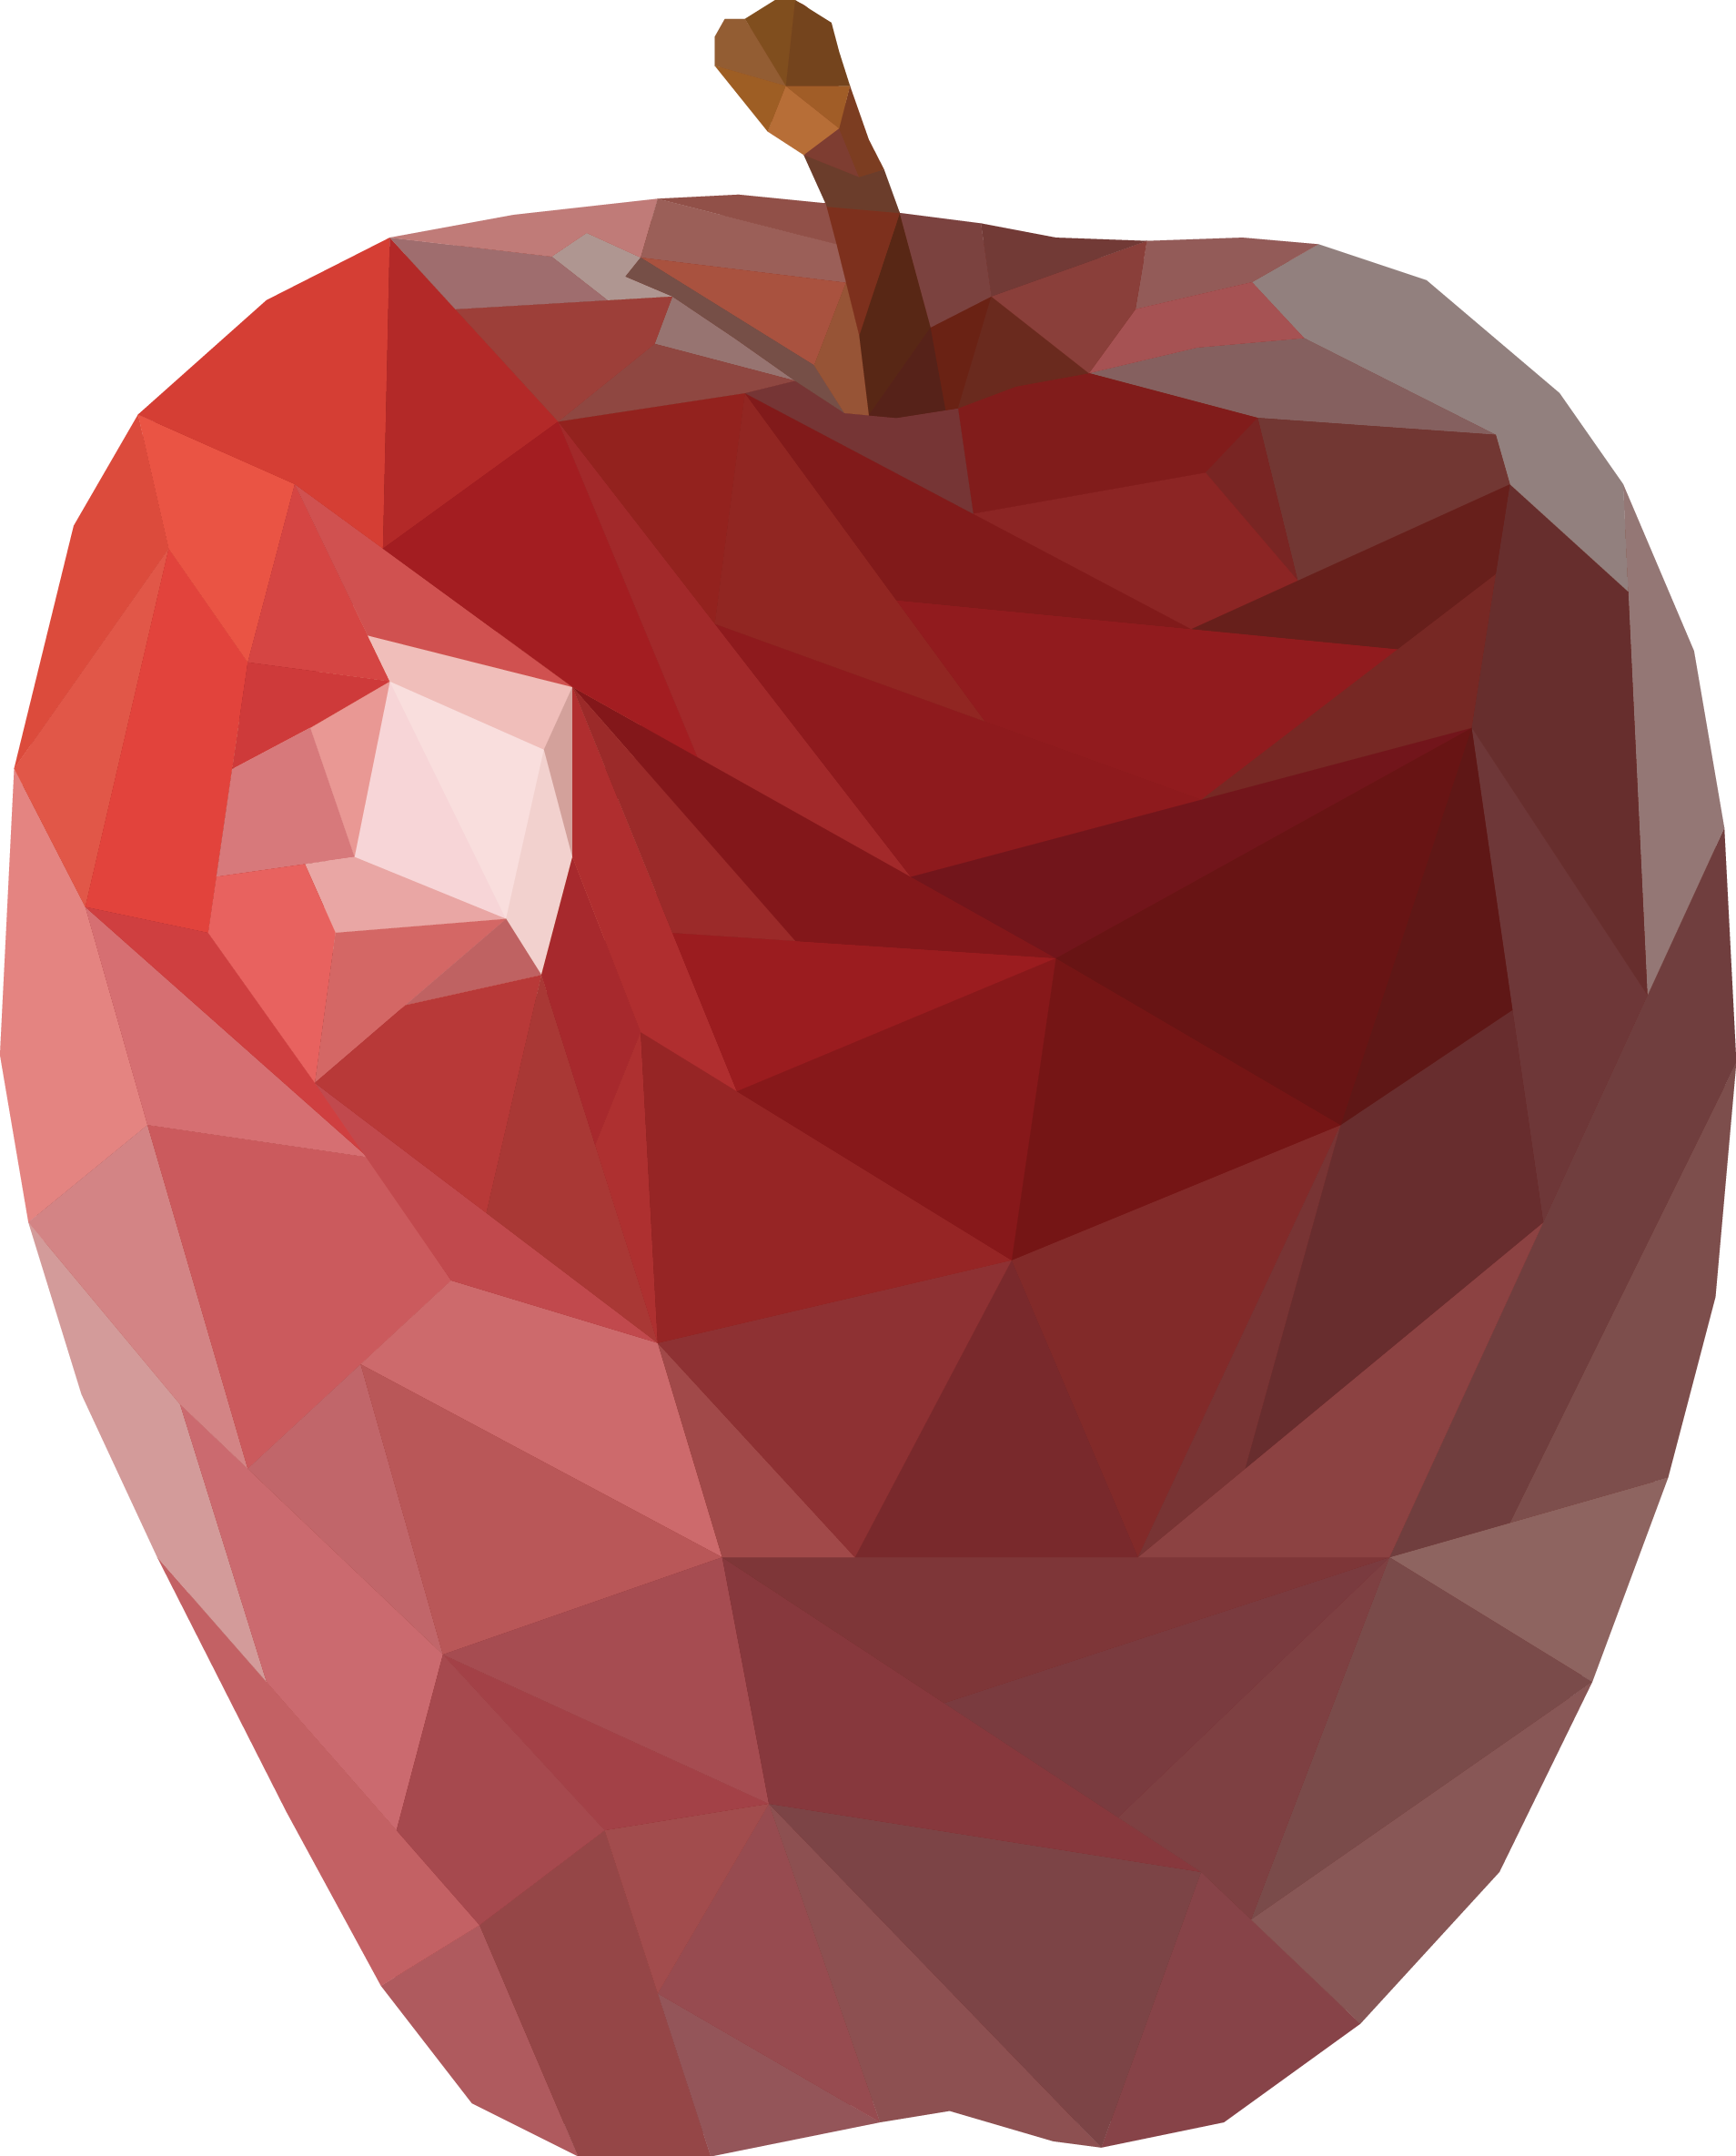 Apple polygon art by. Clipart rose maroon